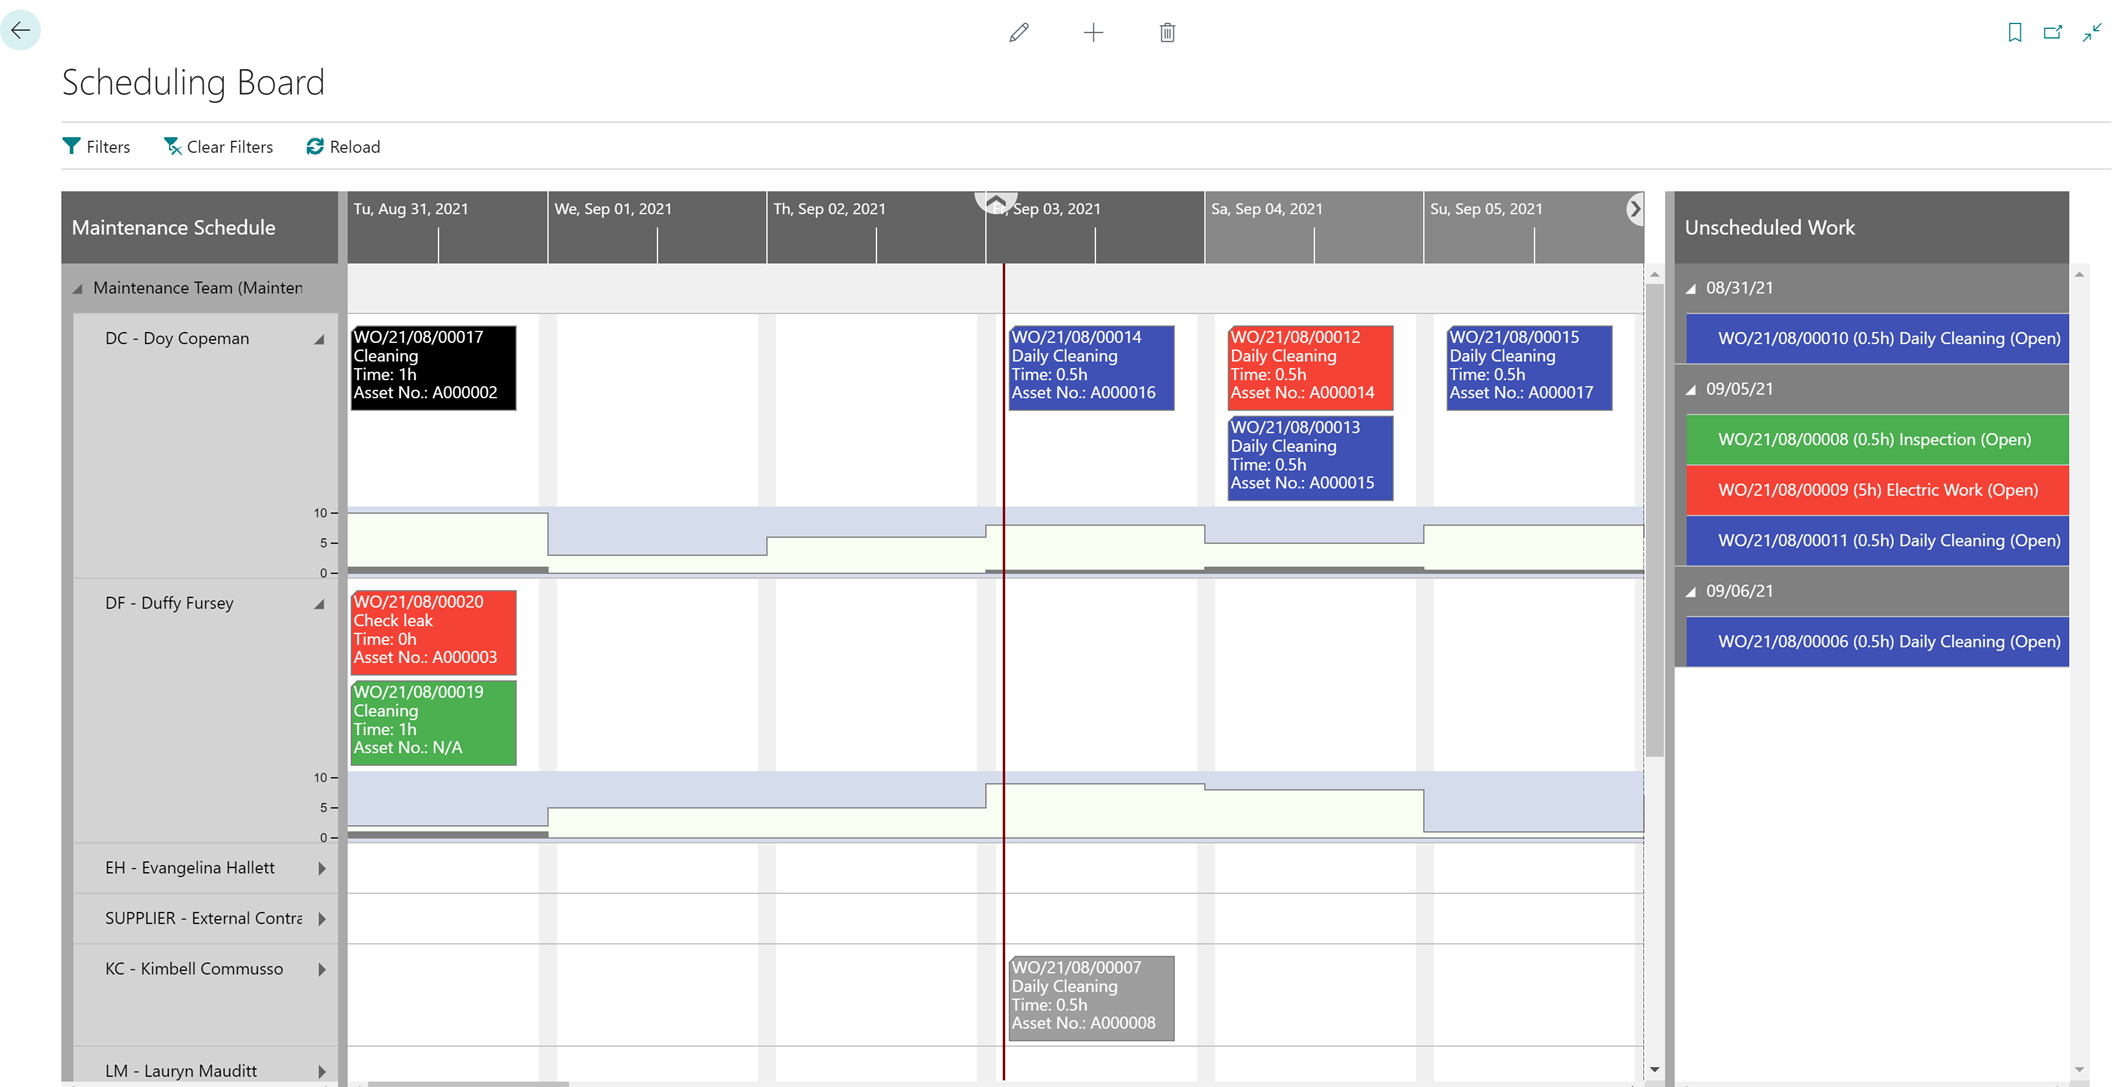 Dynaway Scheduling Board for asset management with manual scheduling of work orders for Microsoft platforms